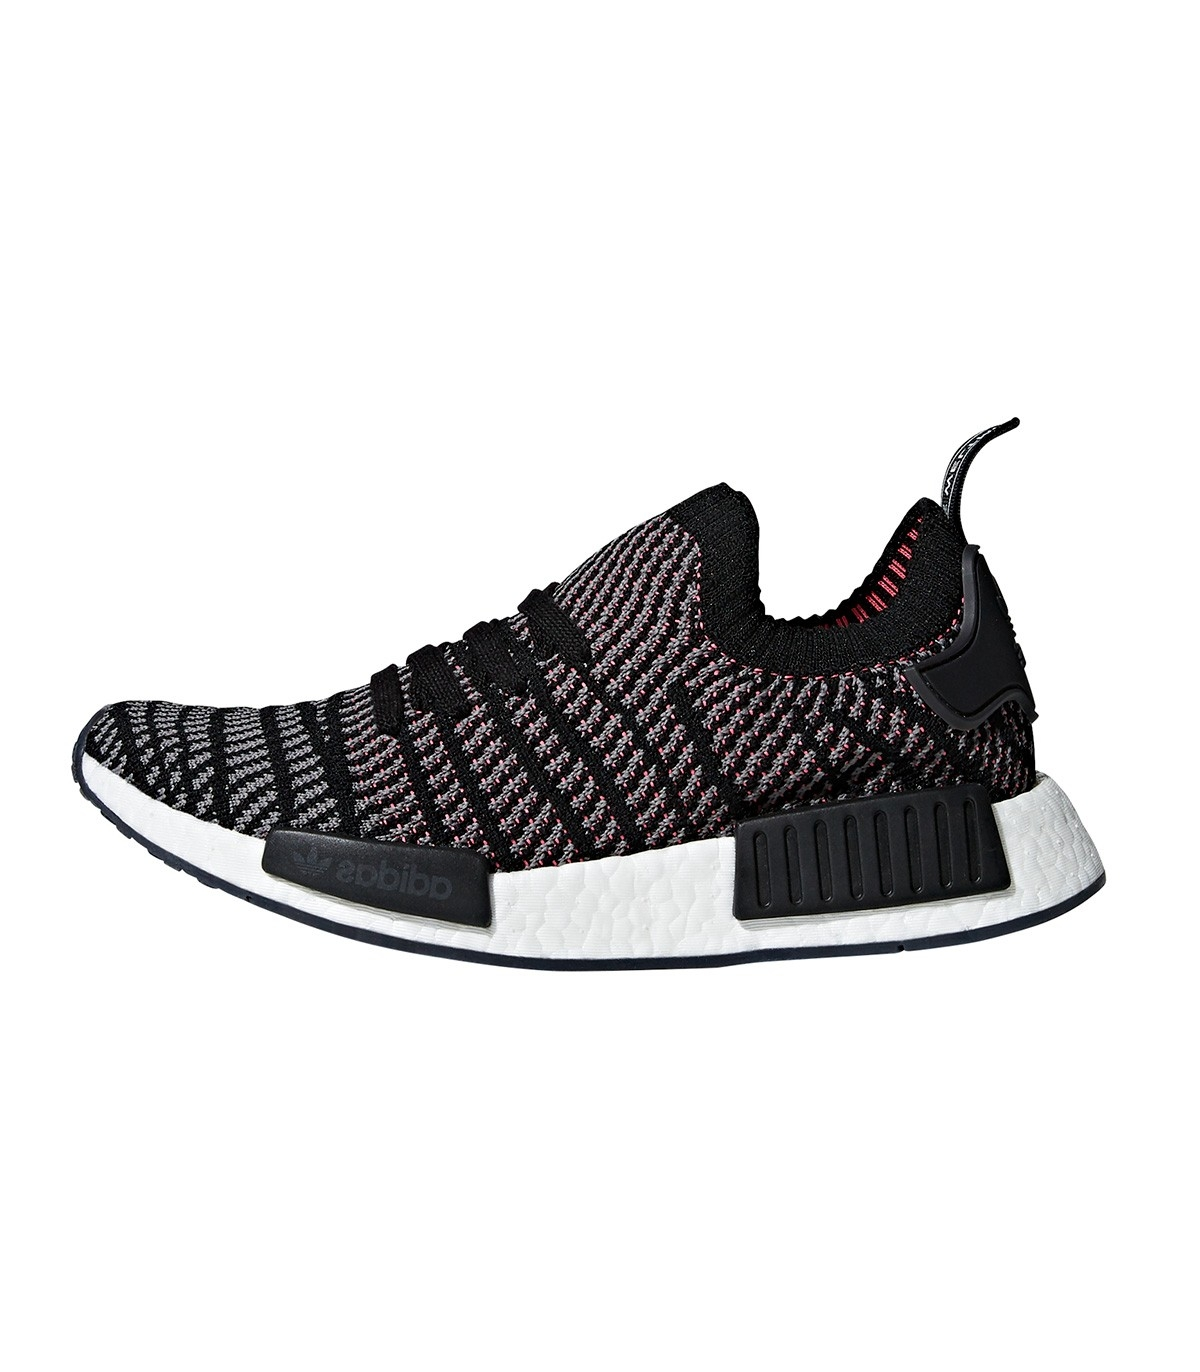 new products 986bc 5b57d Adidas Nmd R1 Stlt Pk Black